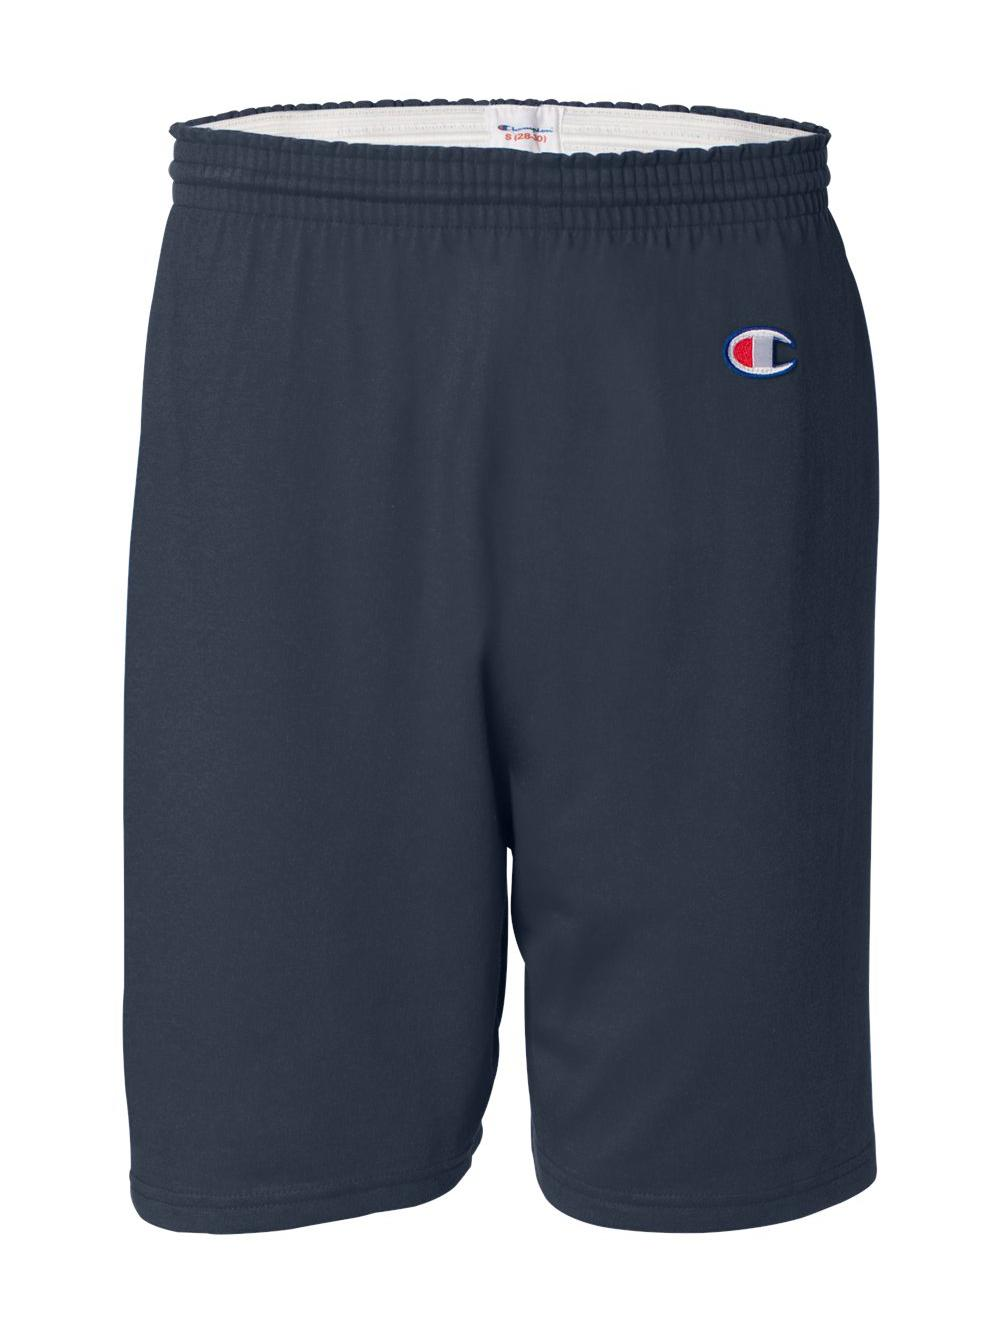 Champion-Cotton-Gym-Shorts-8187 thumbnail 6